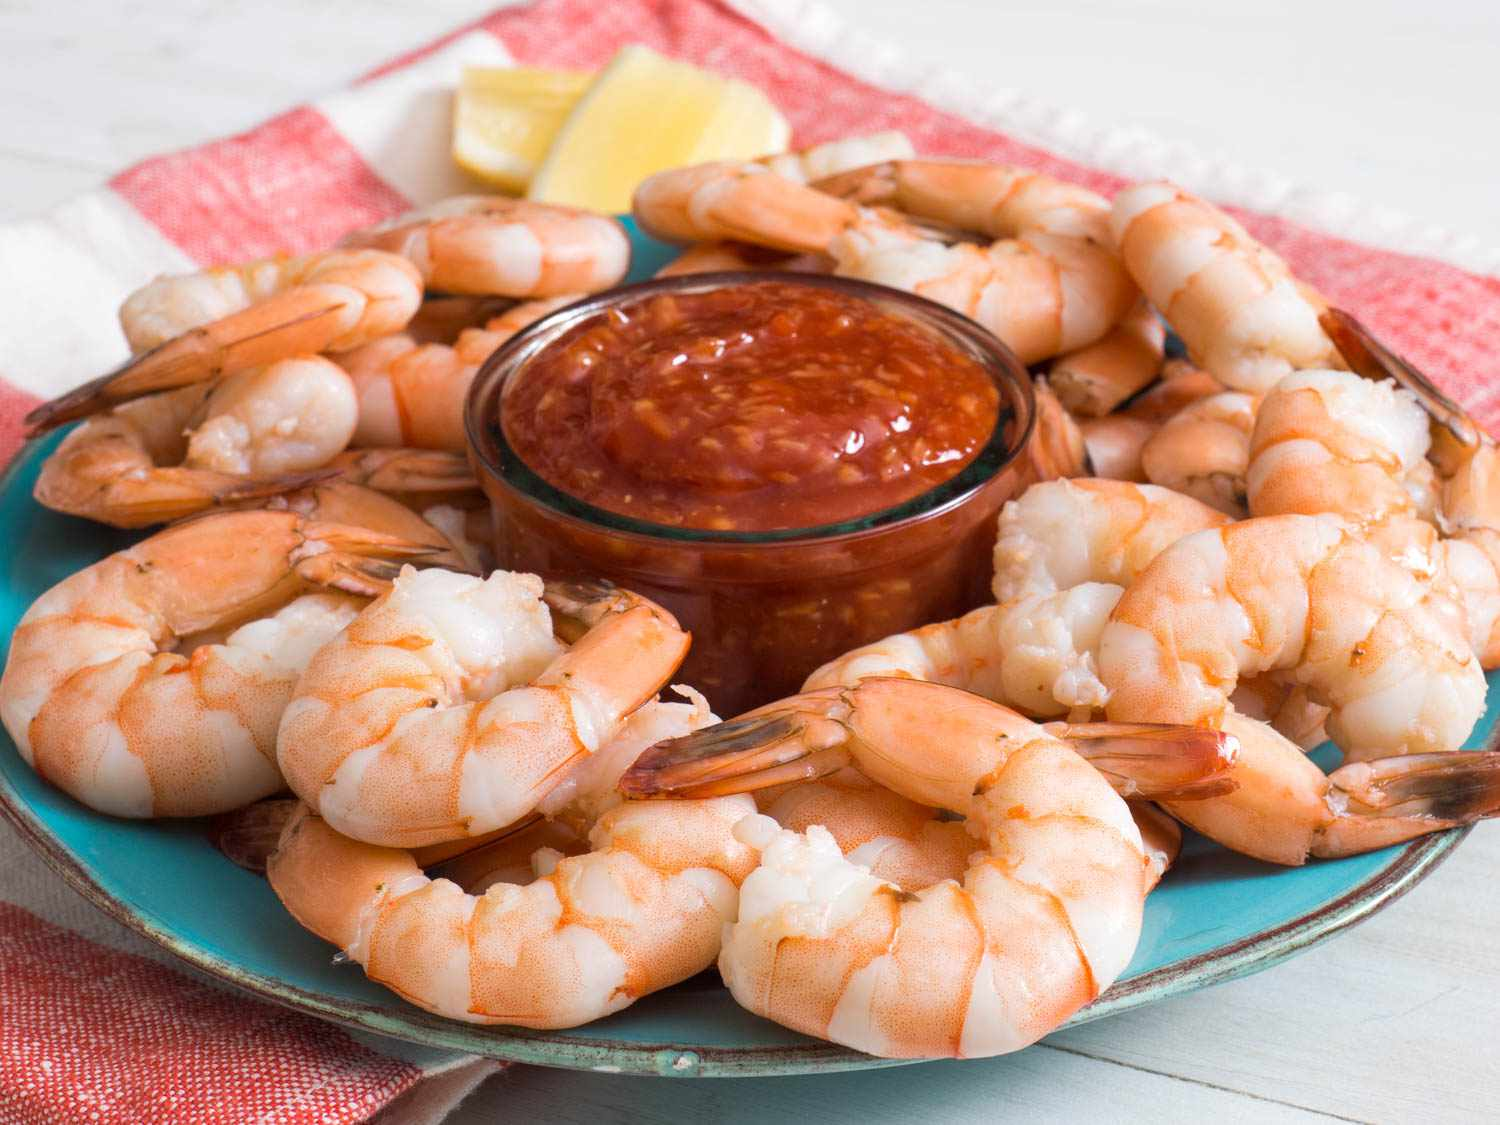 20160714-chilled-seafood-recipes-roundup-11.jpg